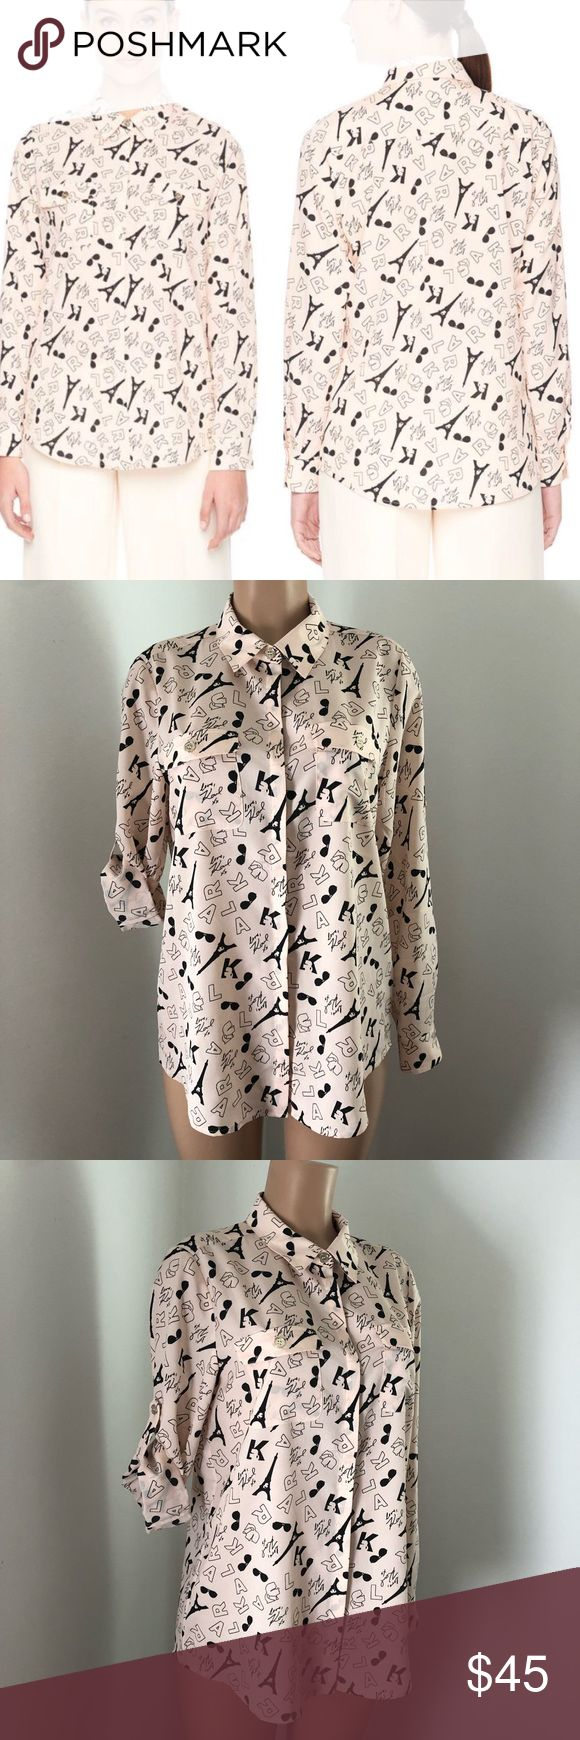 "NWOT Karl Lagerfeld Paris Printed Karltoon Blouse • ALL OVER SHADES BLOUSE • COLLAR NECKLINE • LONG SLEEVES WITH BUTTON CUFF TAB FOR ROLL UP • CONCEALED FRONT BUTTON PLACKET • CHEST FLAP POCKETS • ABOUT 28"" FROM SHOULDER TO HEM • 100% POLYESTER • MACHINE WASH Karl Lagerfeld Tops Button Down Shirts"